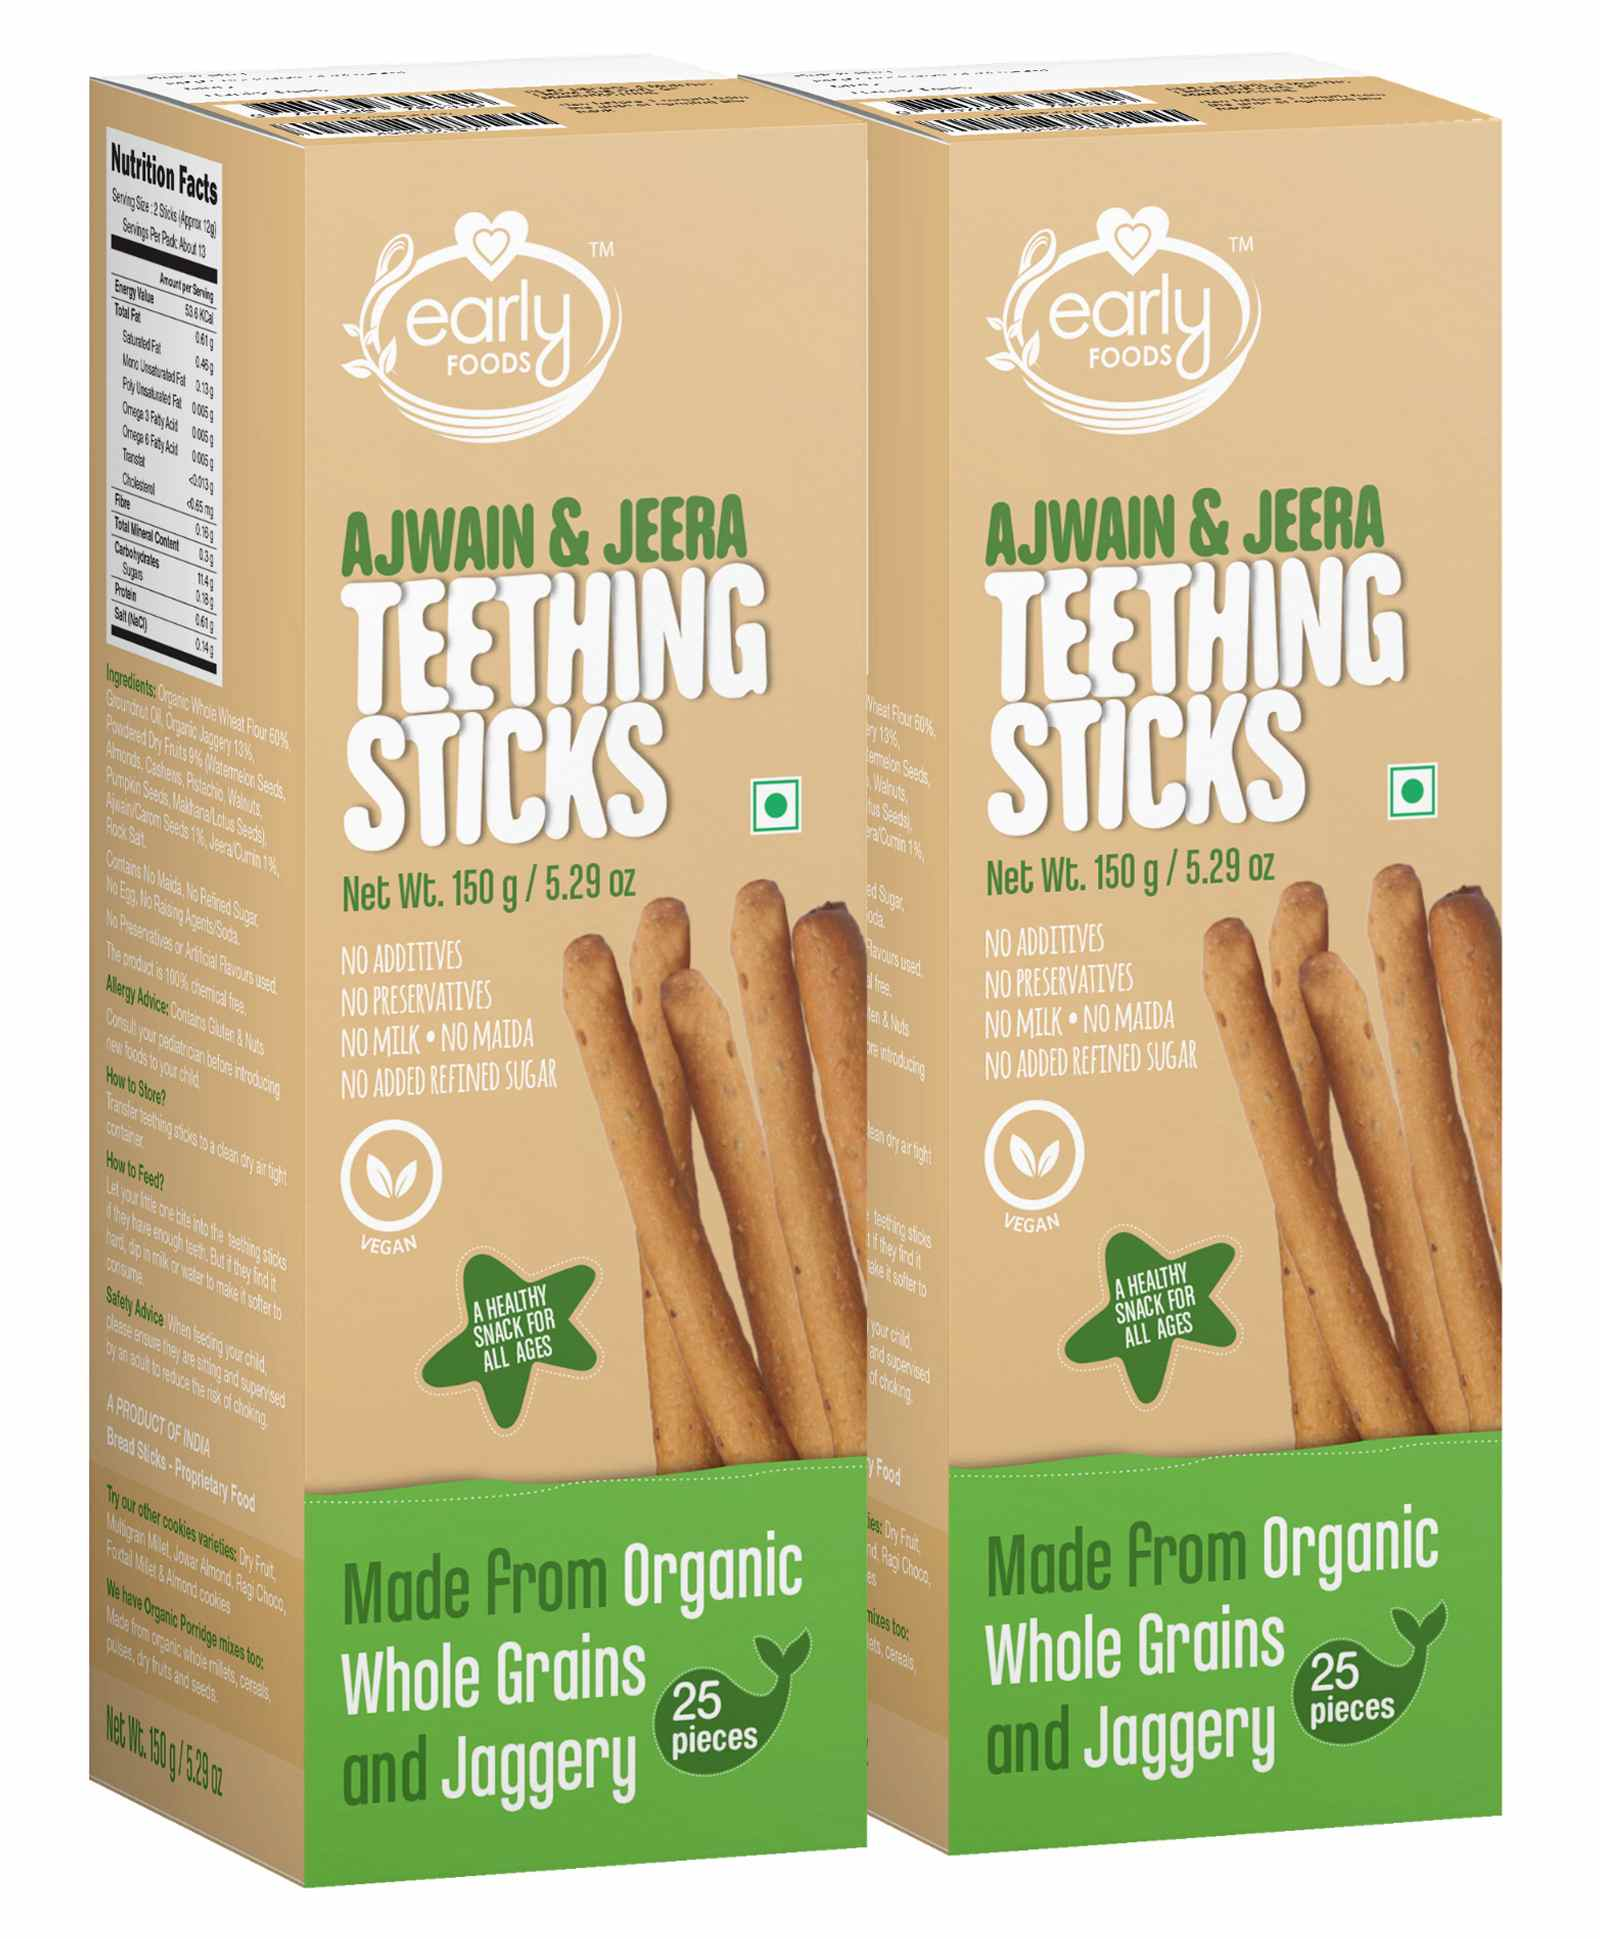 Early Food Whole Wheat Ajwain Jaggery Teething Sticks Pack Of 2 150 Gm Each Online In India Buy At Best Price From Firstcry Com 1588183